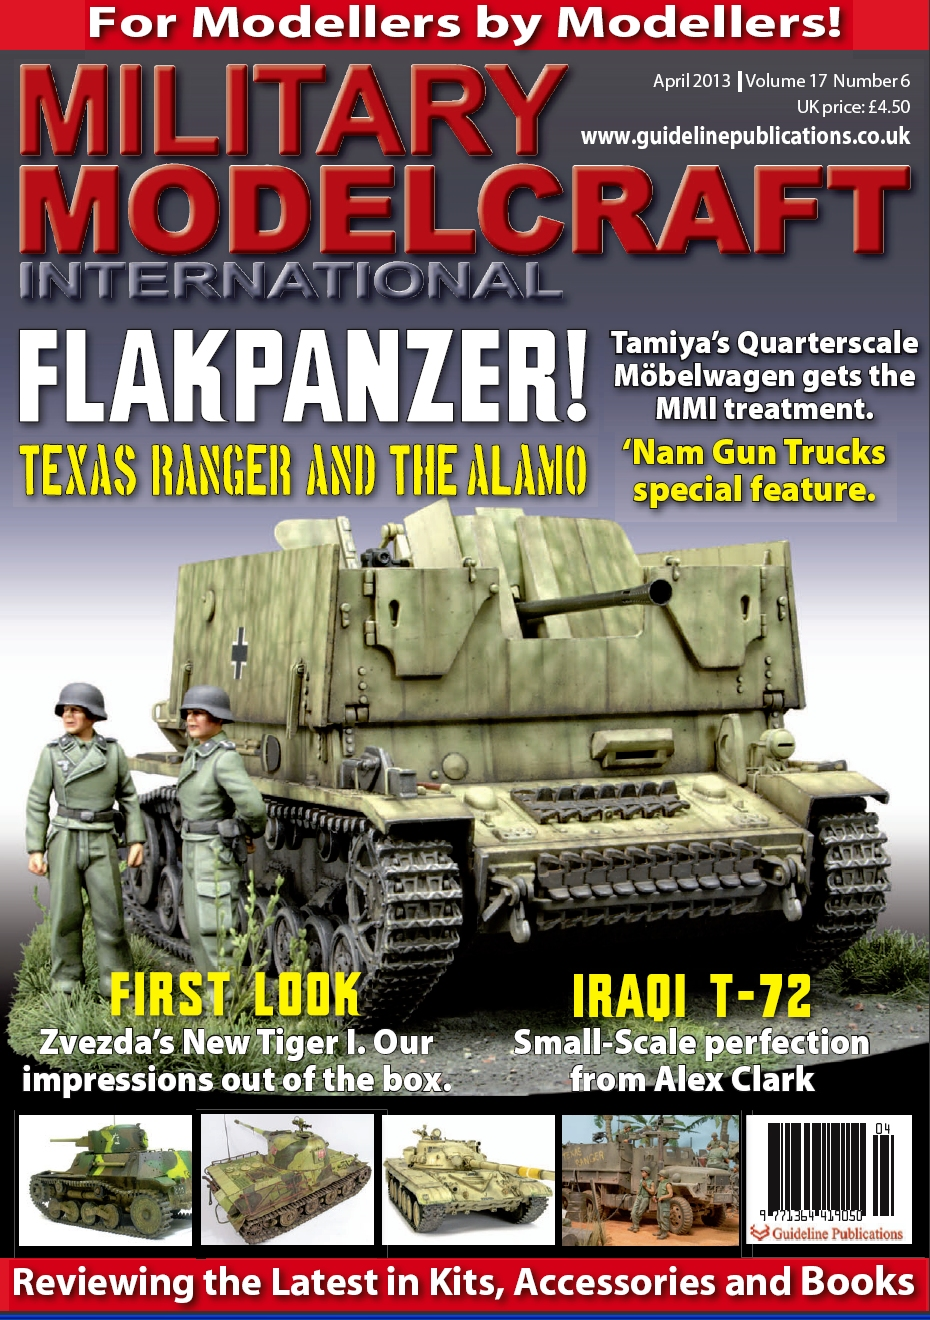 Guideline Publications Military Modelcraft April 2013 vol 17 - 6